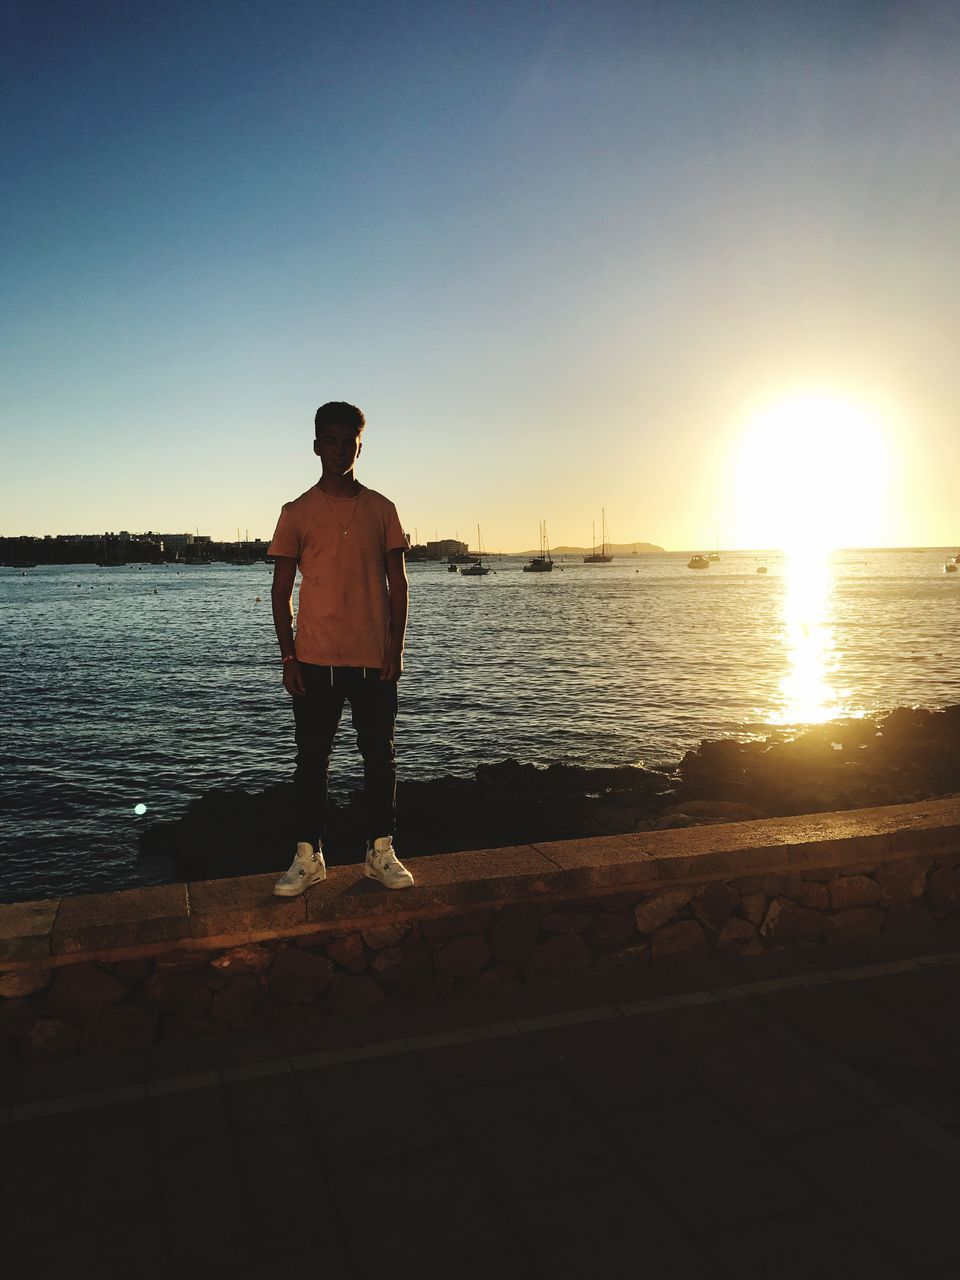 standing, water, full length, sea, sunset, one person, sunlight, sun, real people, nature, clear sky, outdoors, scenics, beauty in nature, tranquil scene, men, leisure activity, sky, lifestyles, horizon over water, vacations, one man only, day, people